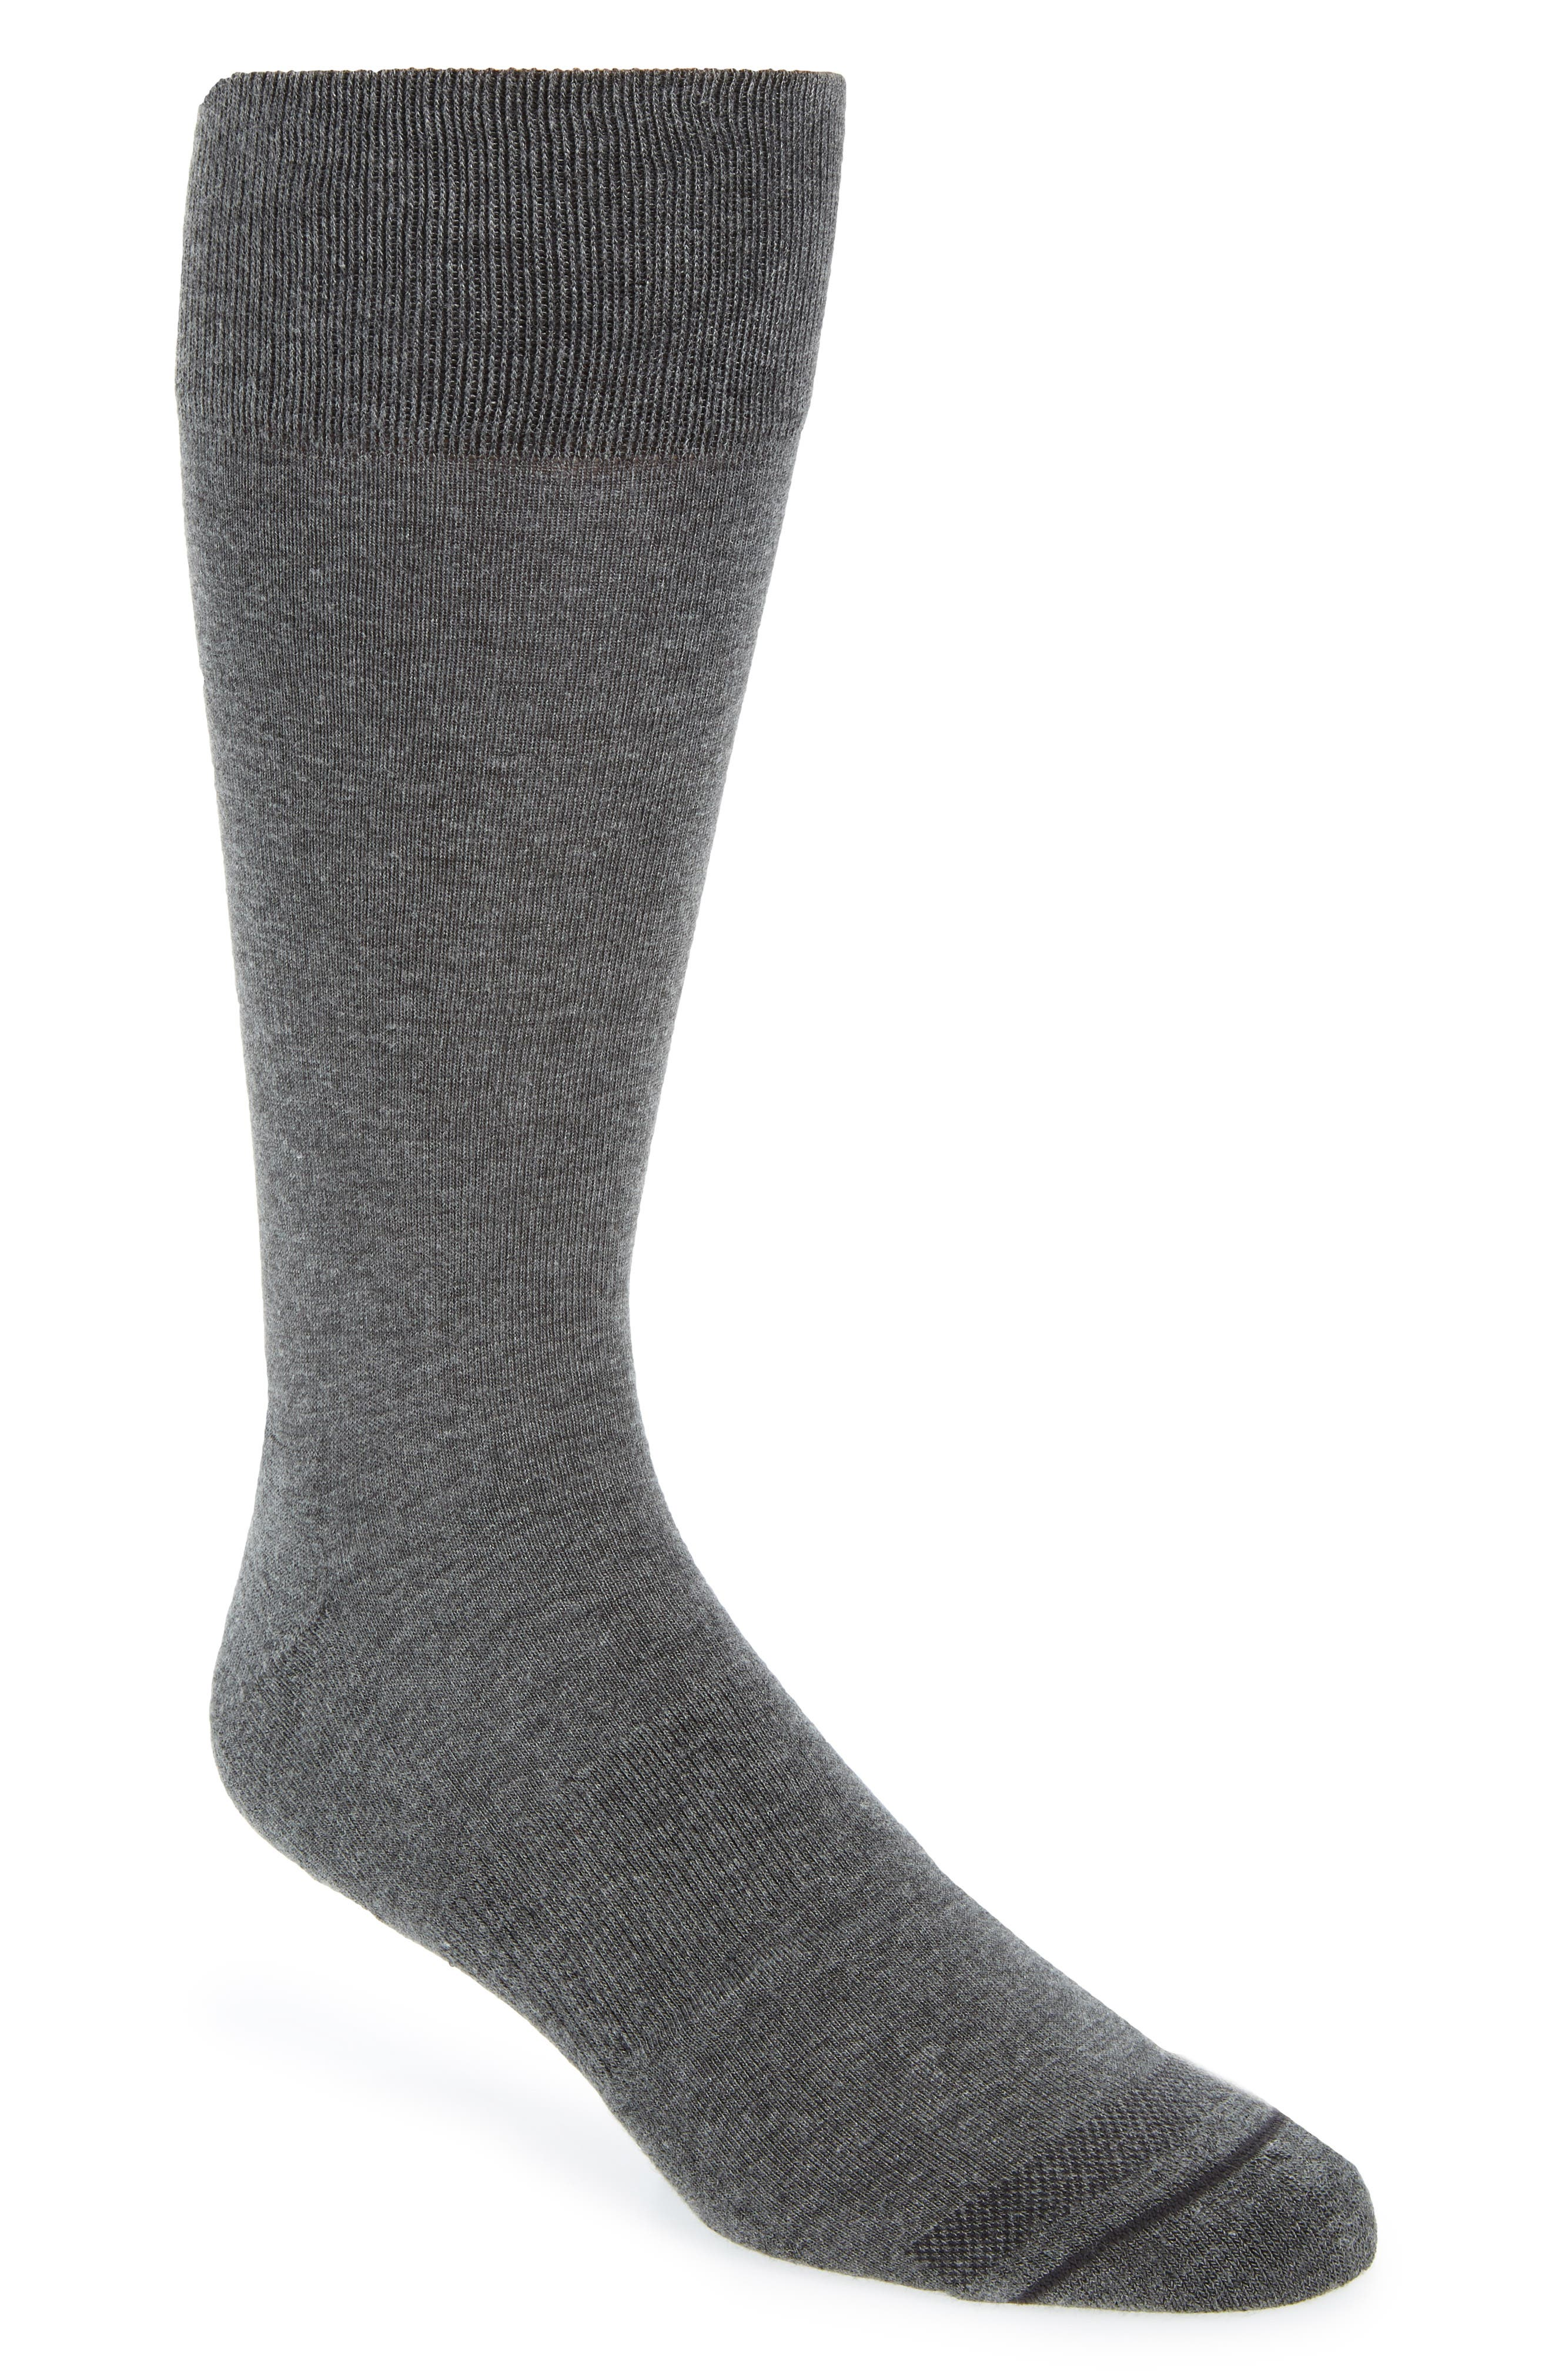 Heather Socks,                         Main,                         color, CHARCOAL HEATHER